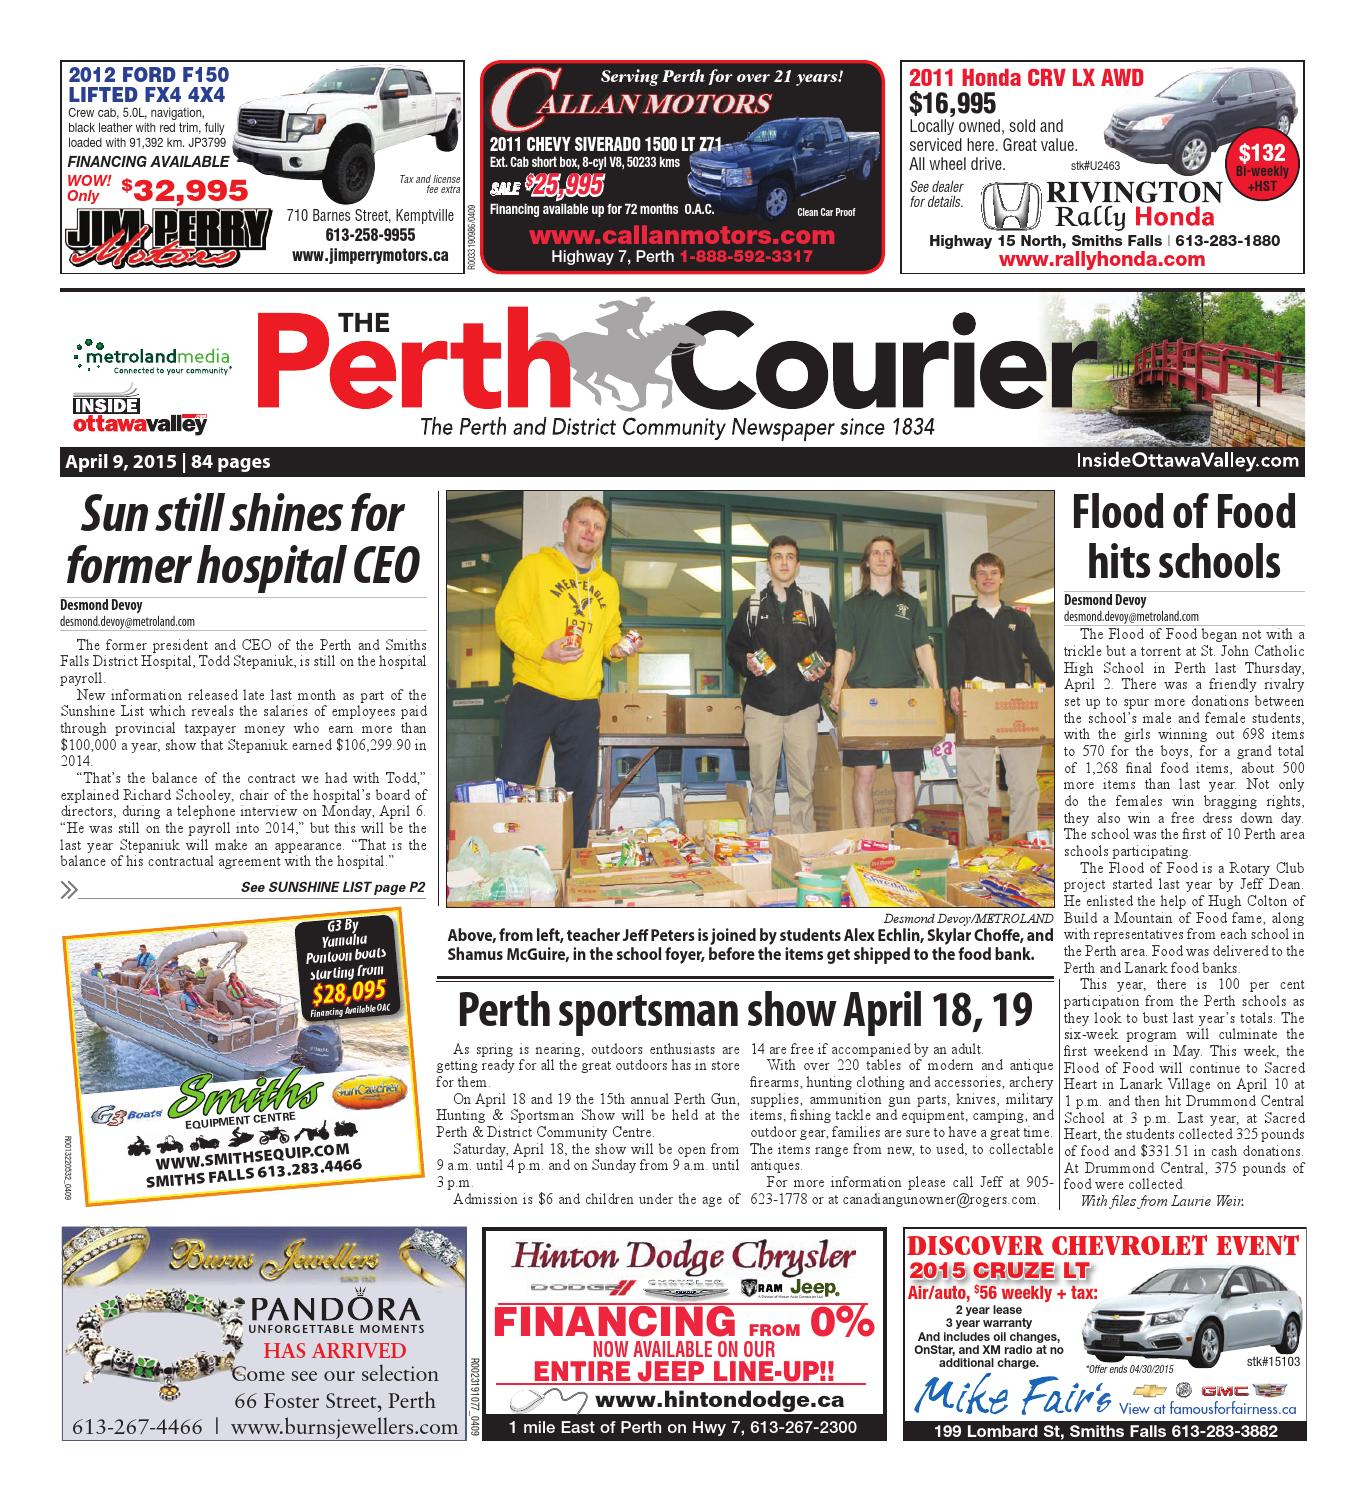 Perth040915 by Metroland East - The Perth Courier - issuu